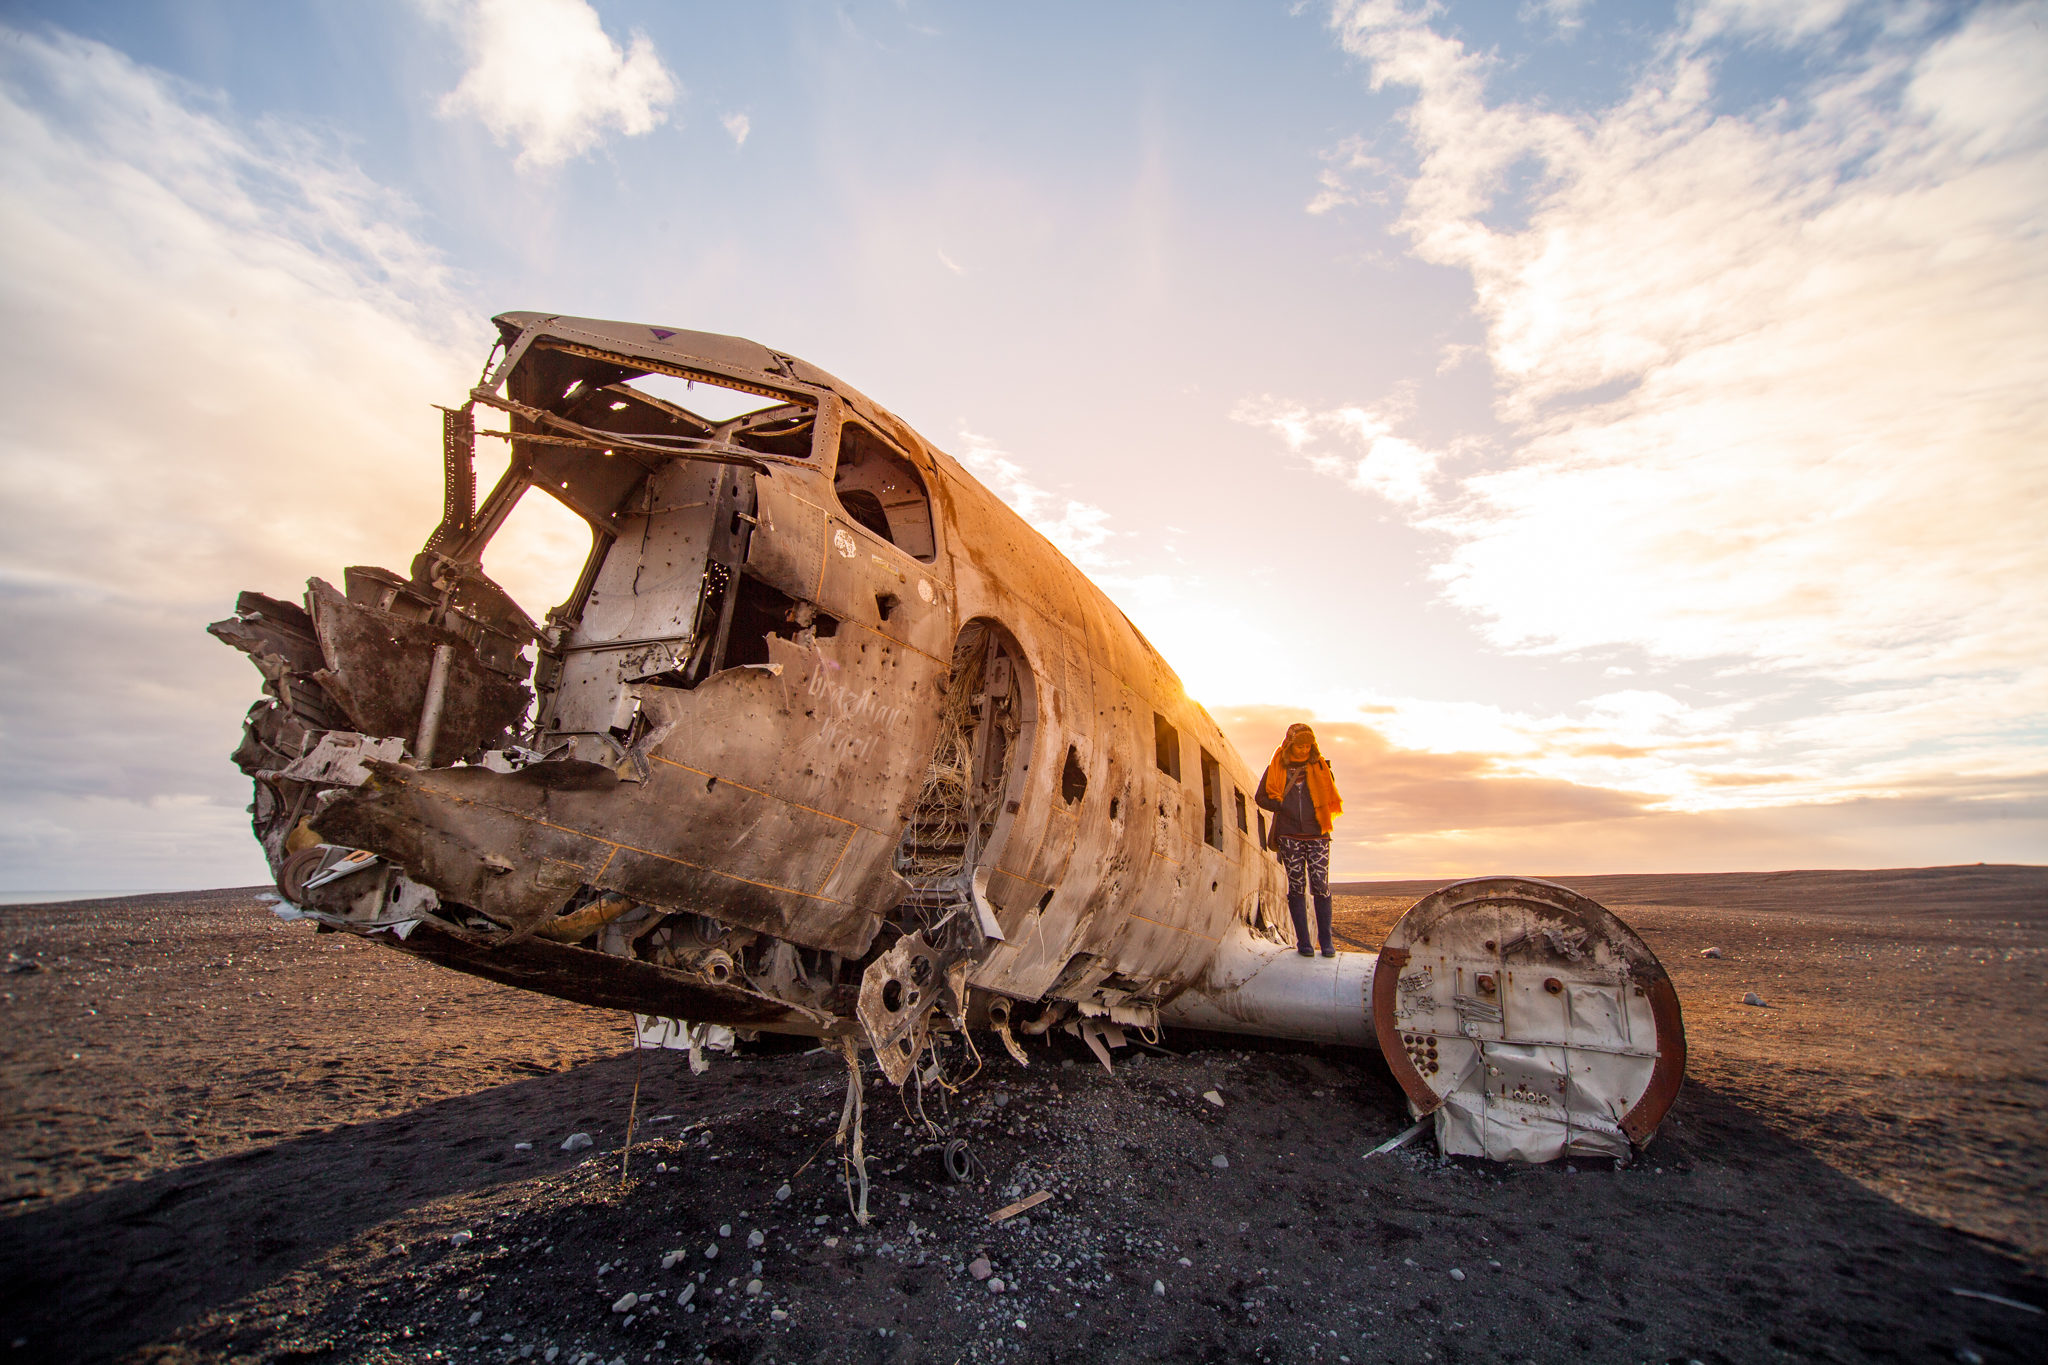 Iceland plane crash during sunset